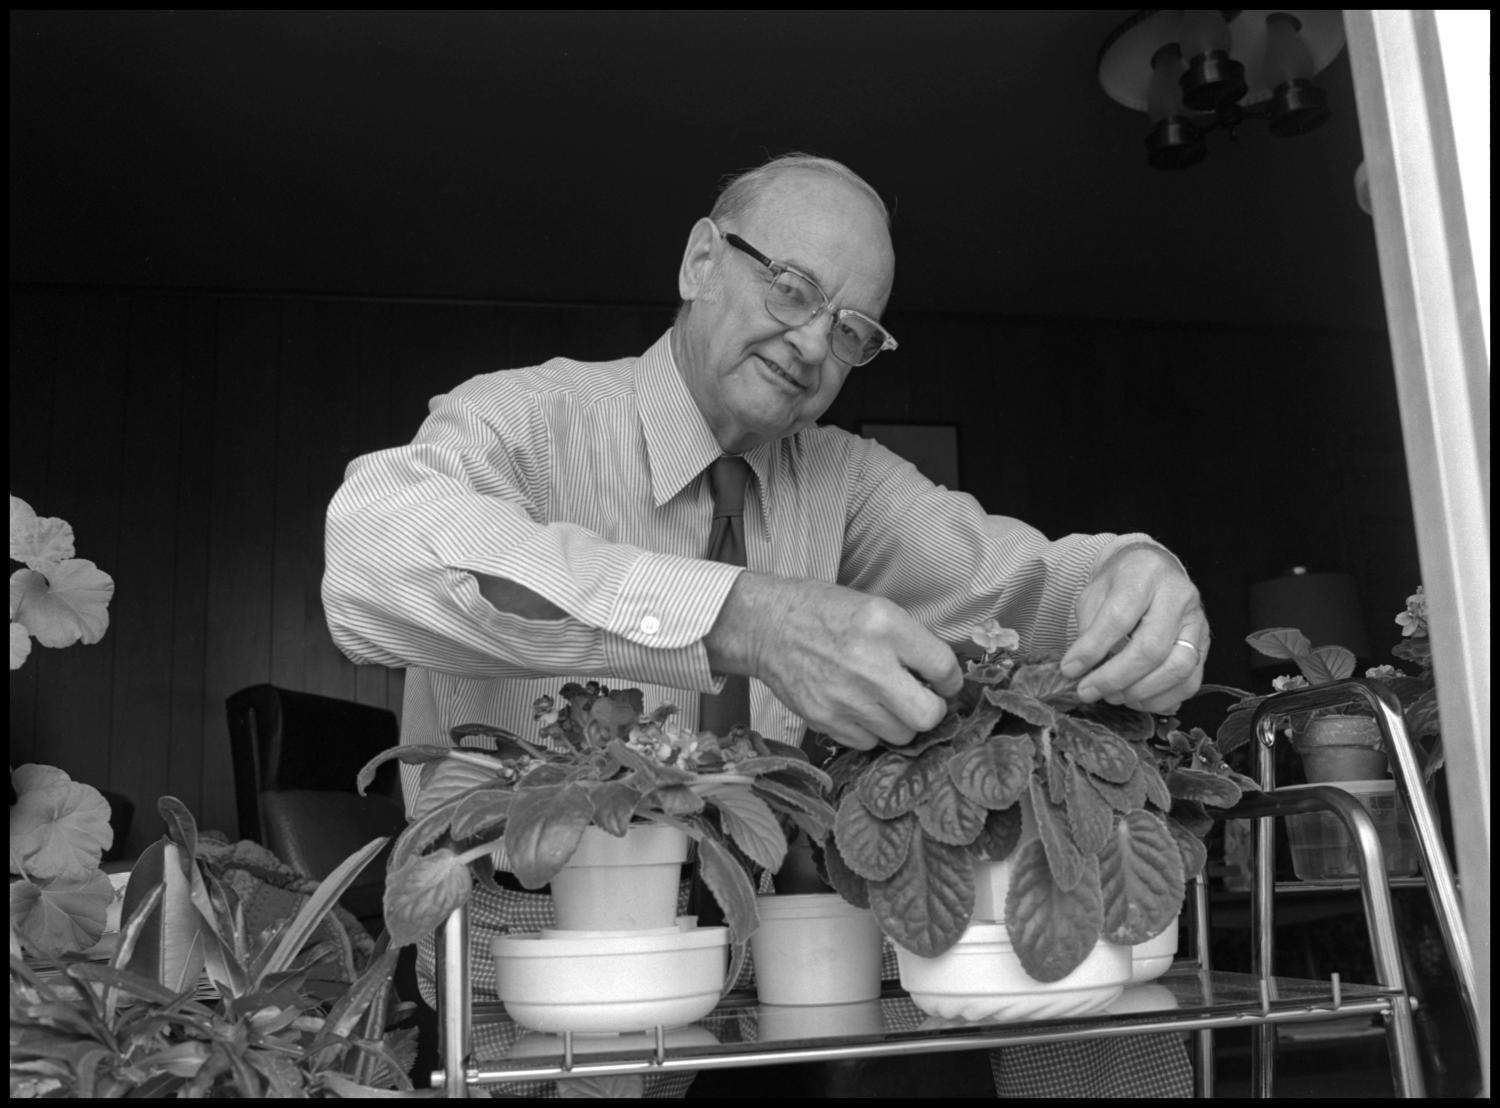 [Garland Brookshear arranging leaves], Photograph of Garland Brookshear, a member of the Management faculty at NTSU, adjusting the leaves on one of his potted plants. There are several close to the window. Brookshear is being photographed for his retirement.,